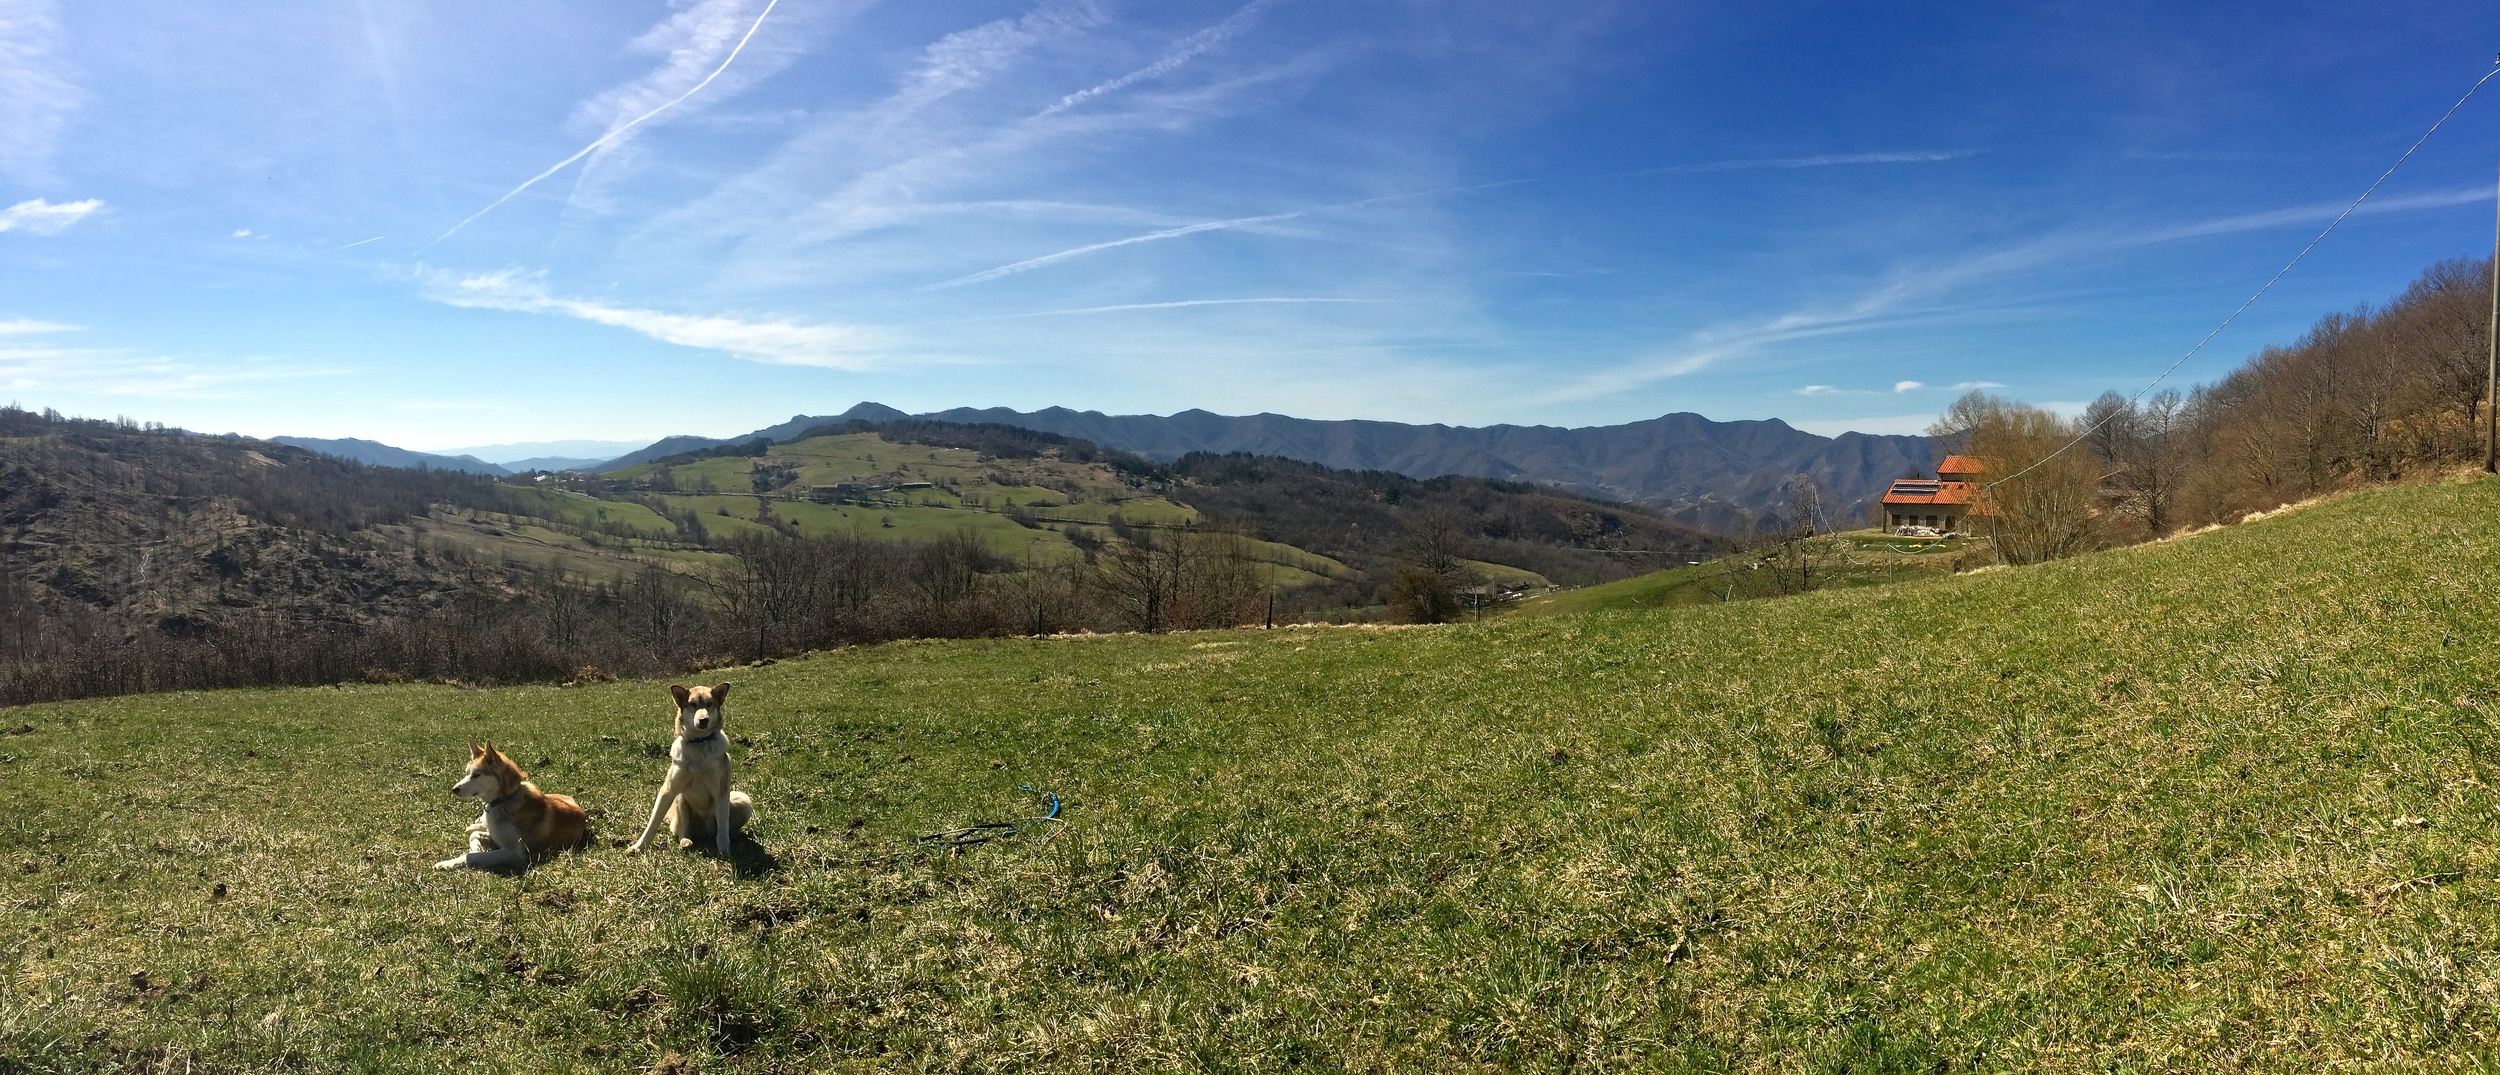 Lupa and Balto enjoying freedom in the fields before the cows arrive for the summer. The Rifugio is visible to the right in this photo, surrounded by the rural and sparsely populated hills and peaks of the Apennines of Romagna.